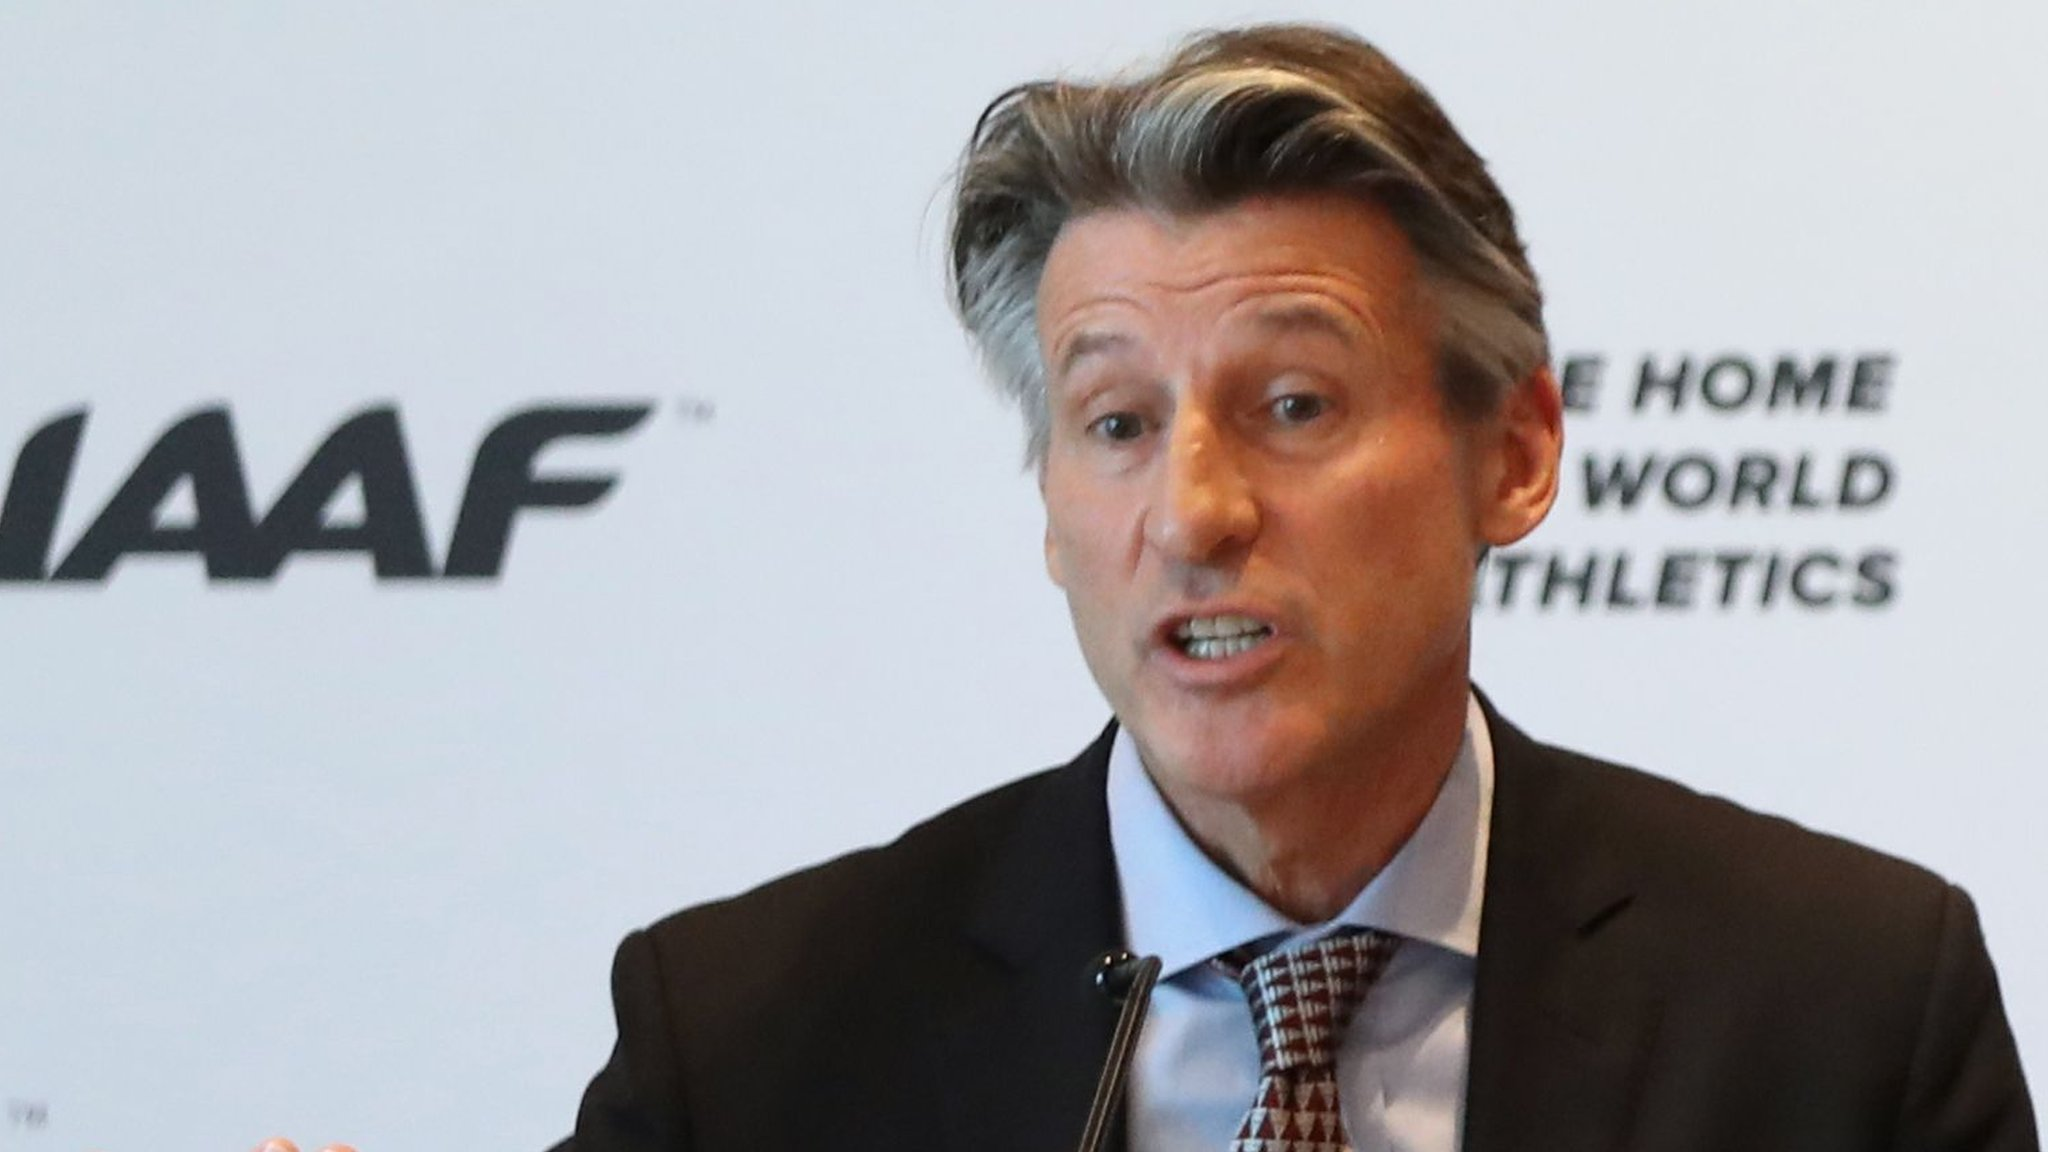 Lord Coe: IAAF president cleared after investigation into whether he misled MPs